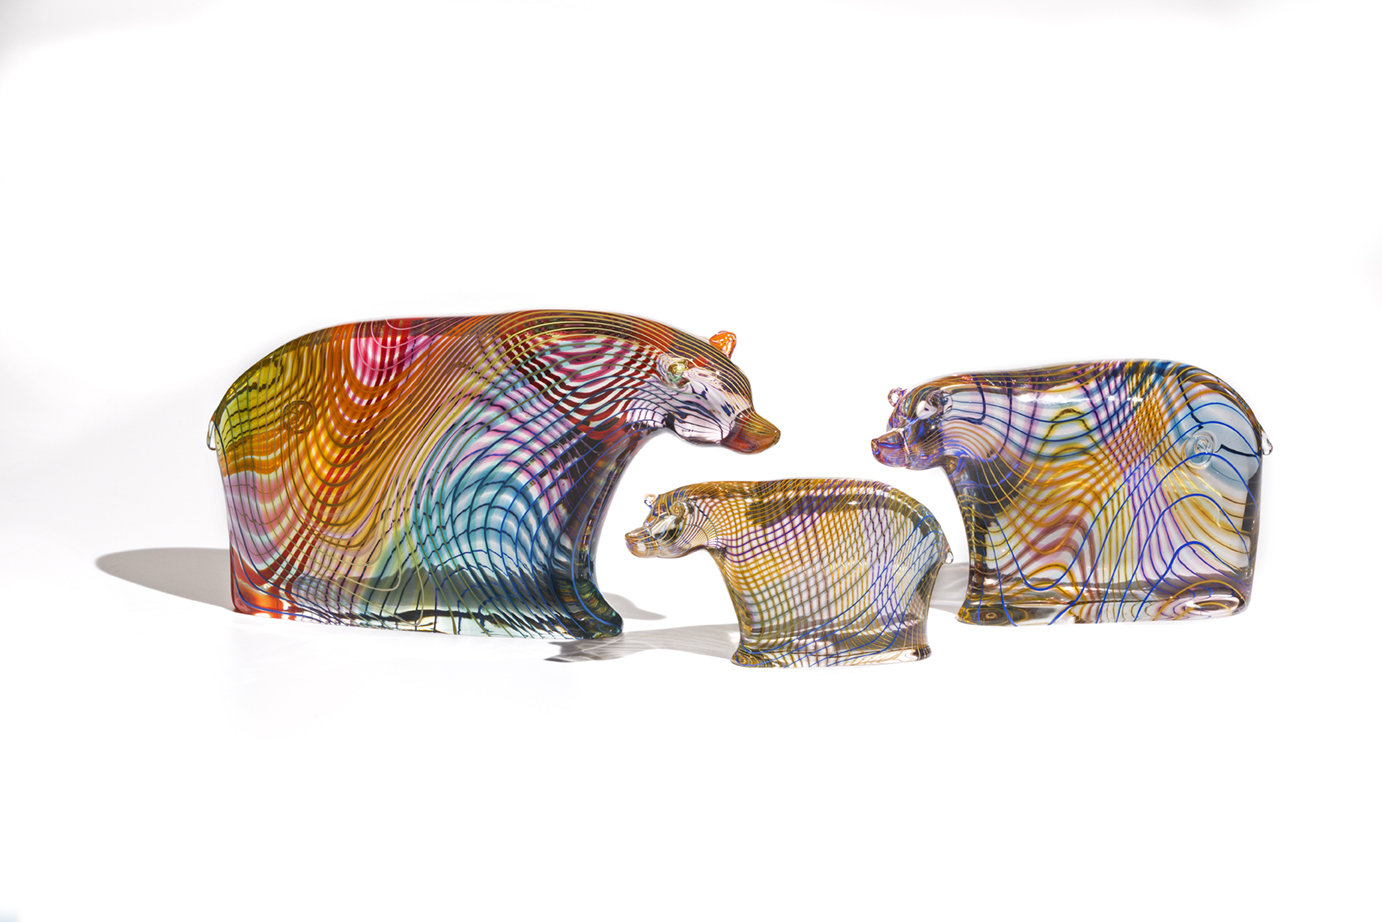 Sculpted glass bears by Dan Friday